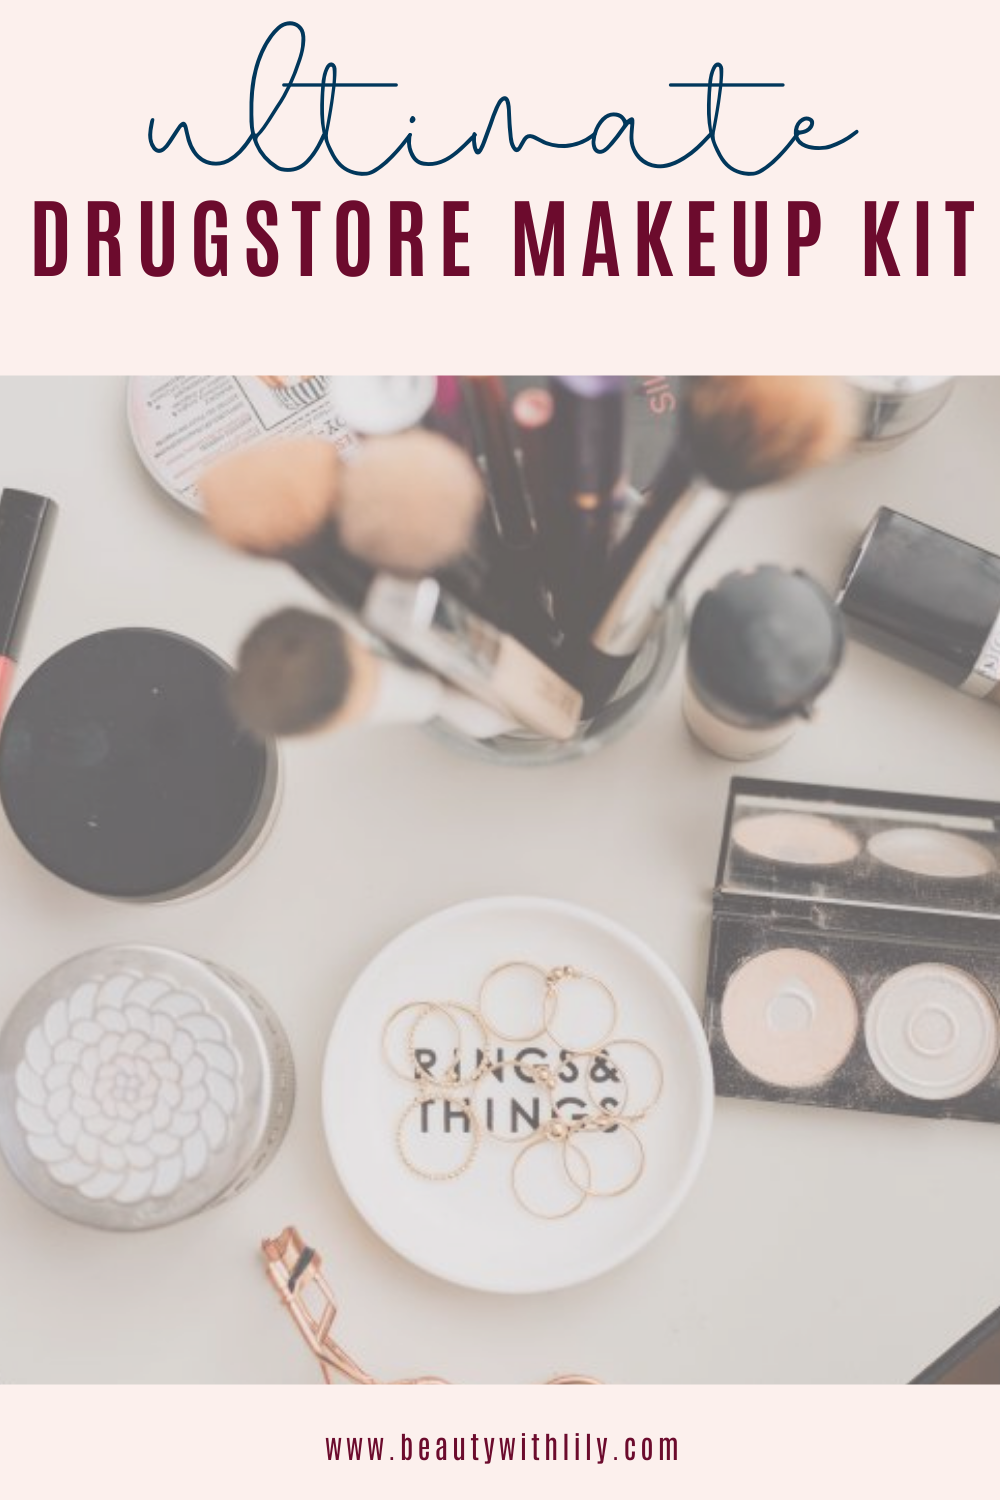 Ultimate Drugstore Makeup Kit // Makeup Starter Kit // Drugstore Makeup // Affordable Makeup // Best Drugstore Makeup | Beauty With Lily #drugstoremakeup #startermakeupkit